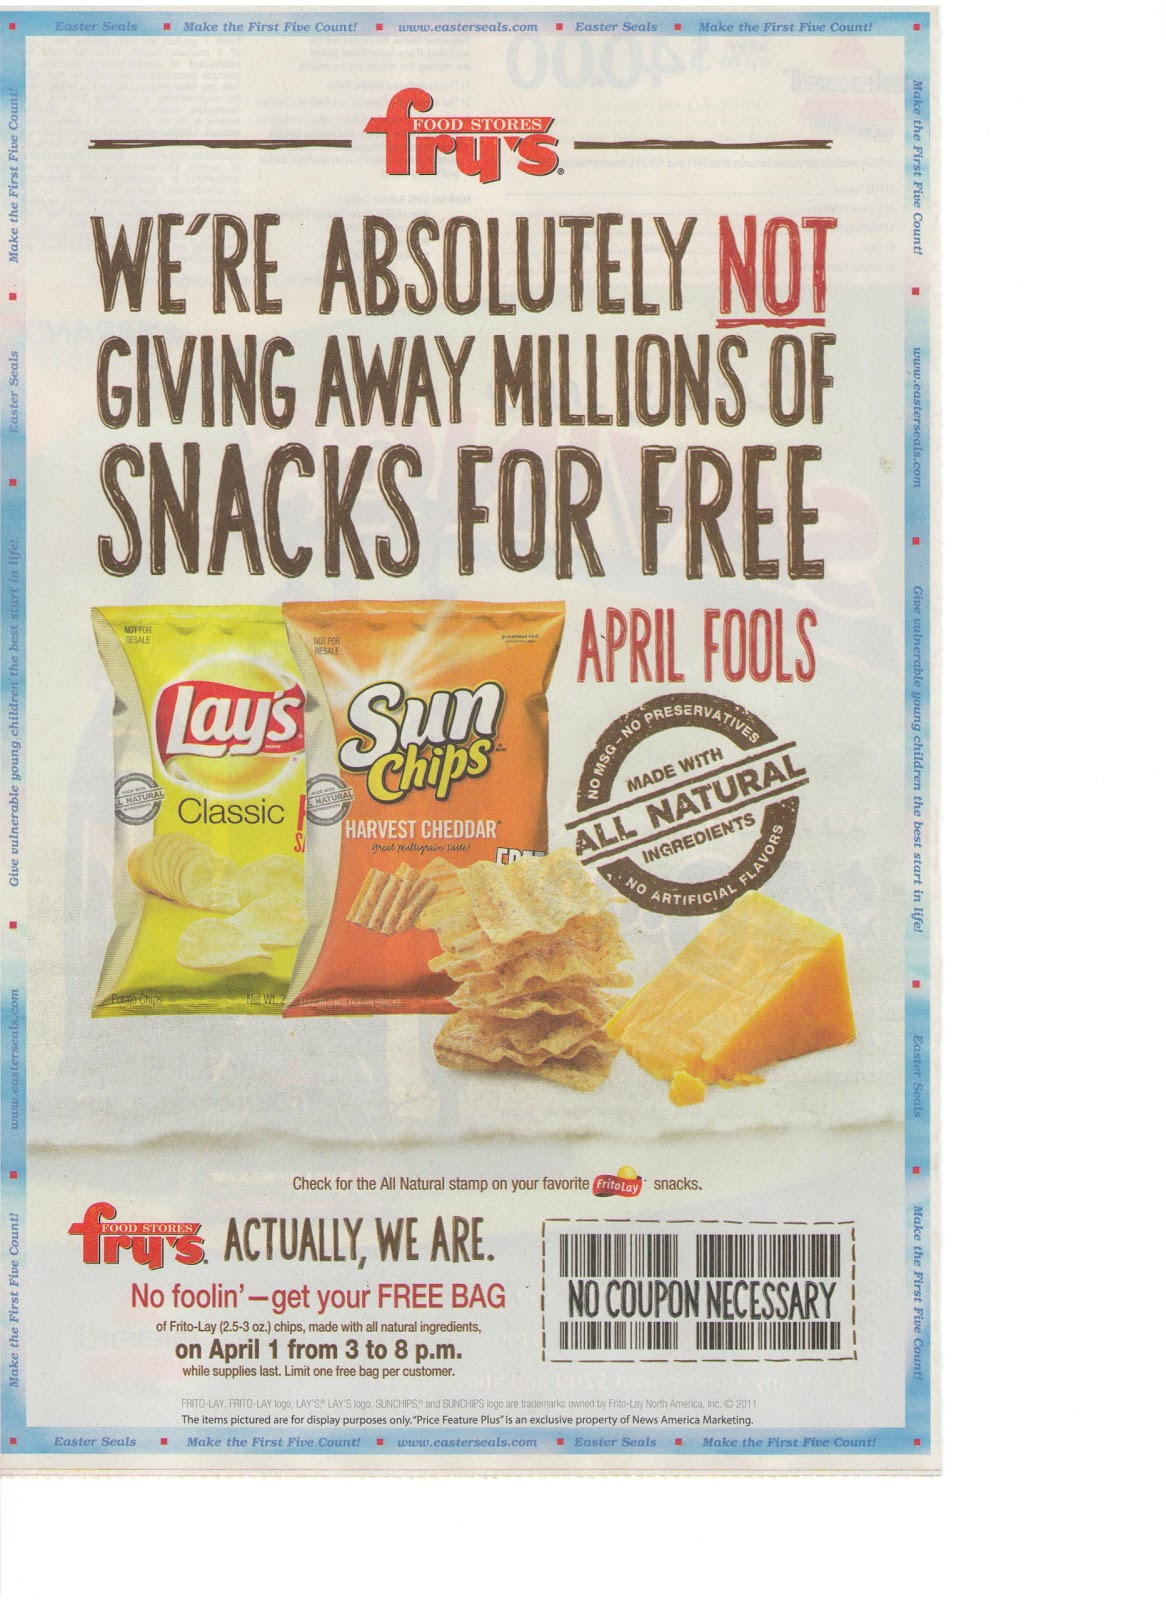 picture about Frys Printable Coupons called Frys coupon codes arizona - Inner difficult enthusiasm promotions black friday